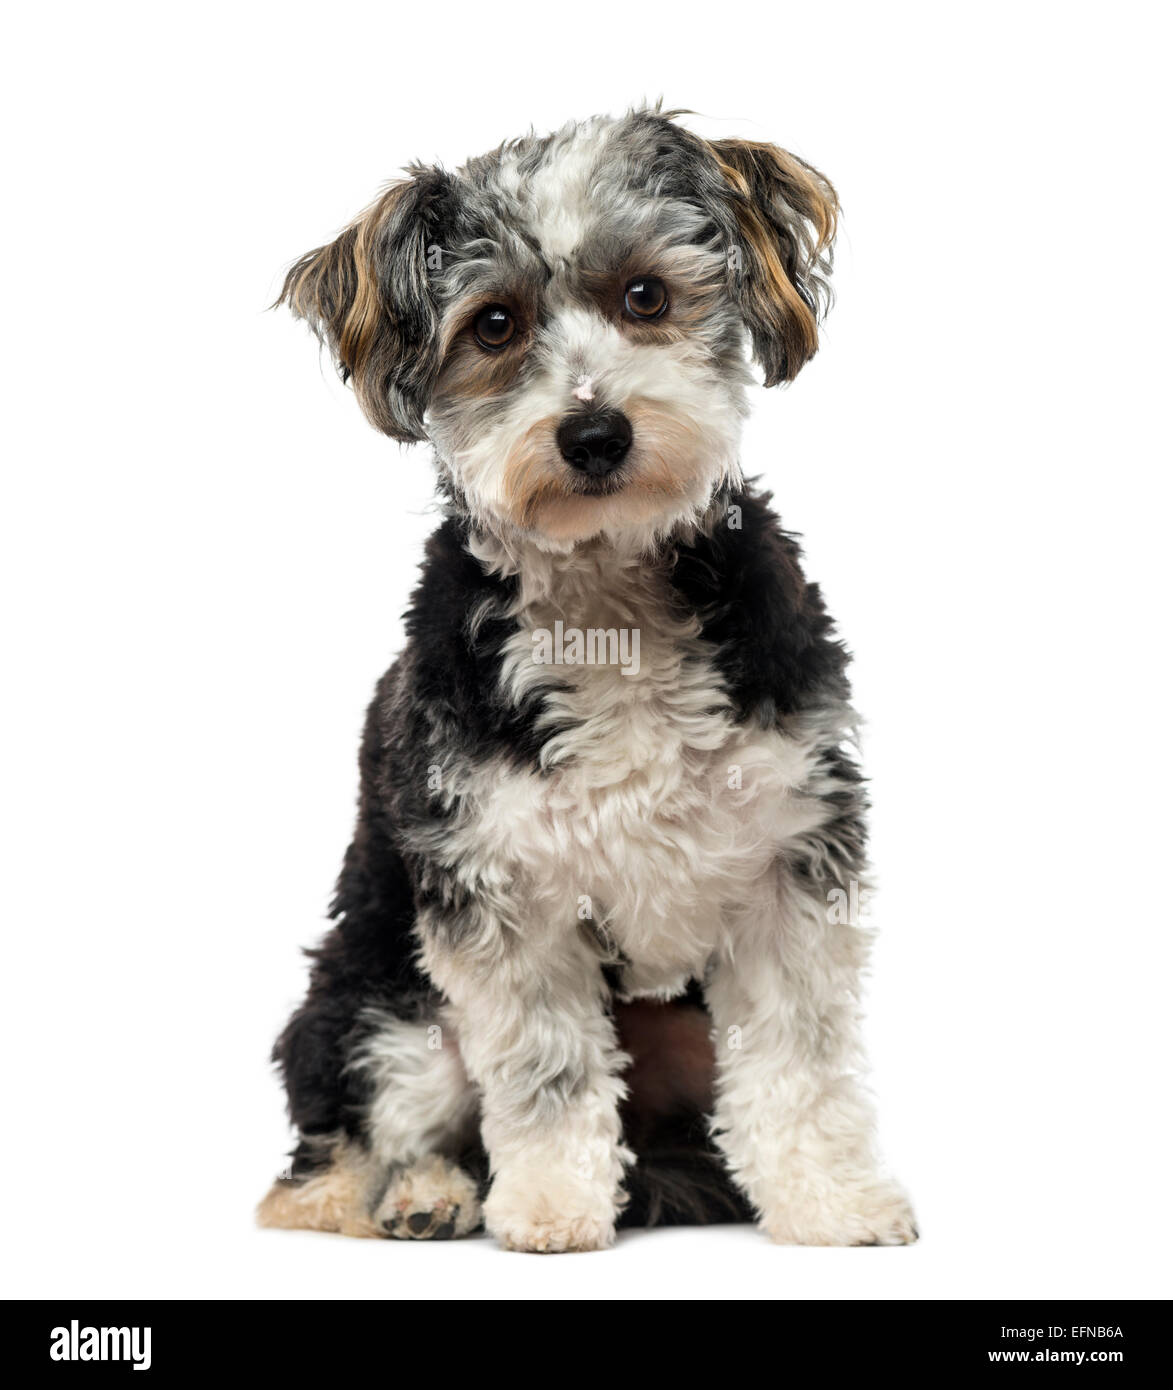 Crossbreed dog (1 year old) against white background Stock Photo